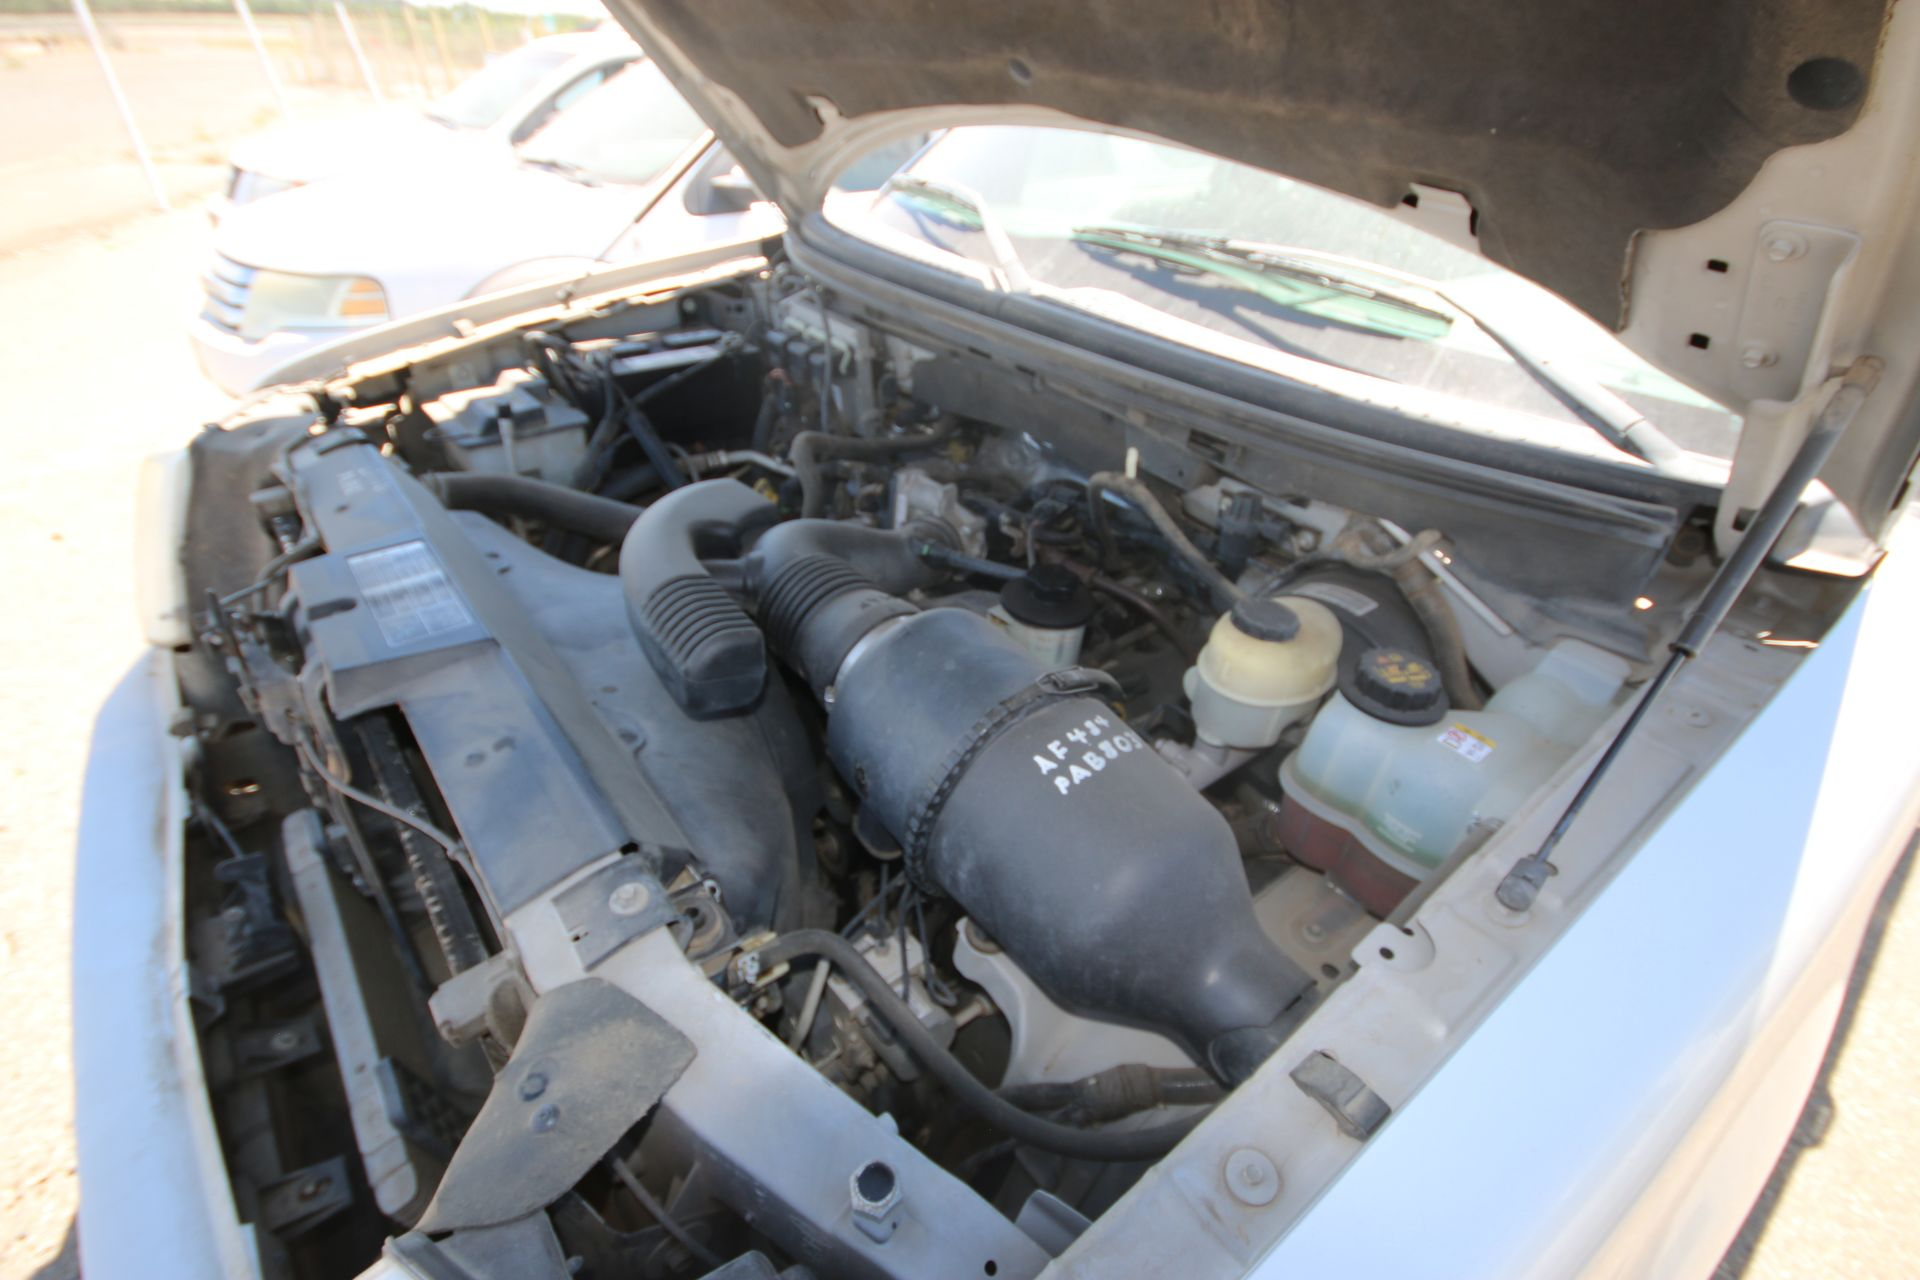 2008 Ford F150 Pick Up Truck, VIN #: 1FTRX12W7BFB9710, with 214,817 Miles, Started Up as of 06/24/ - Image 23 of 24